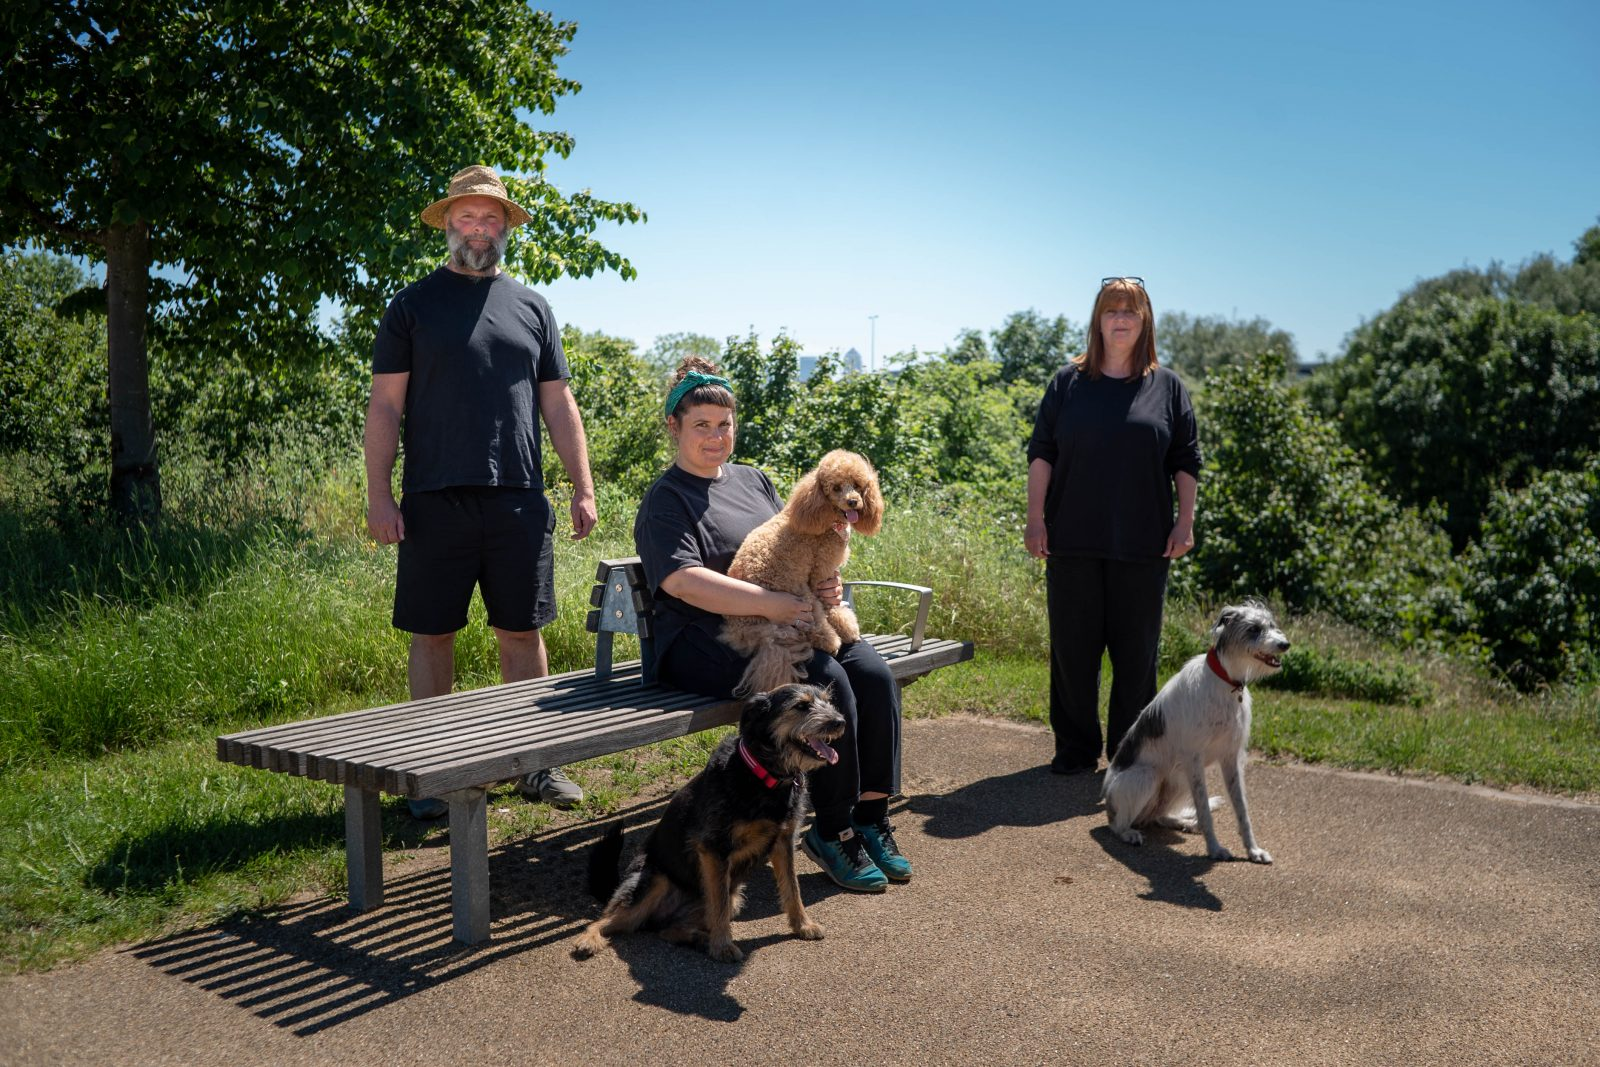 Three people and three dogs around a bench in a park